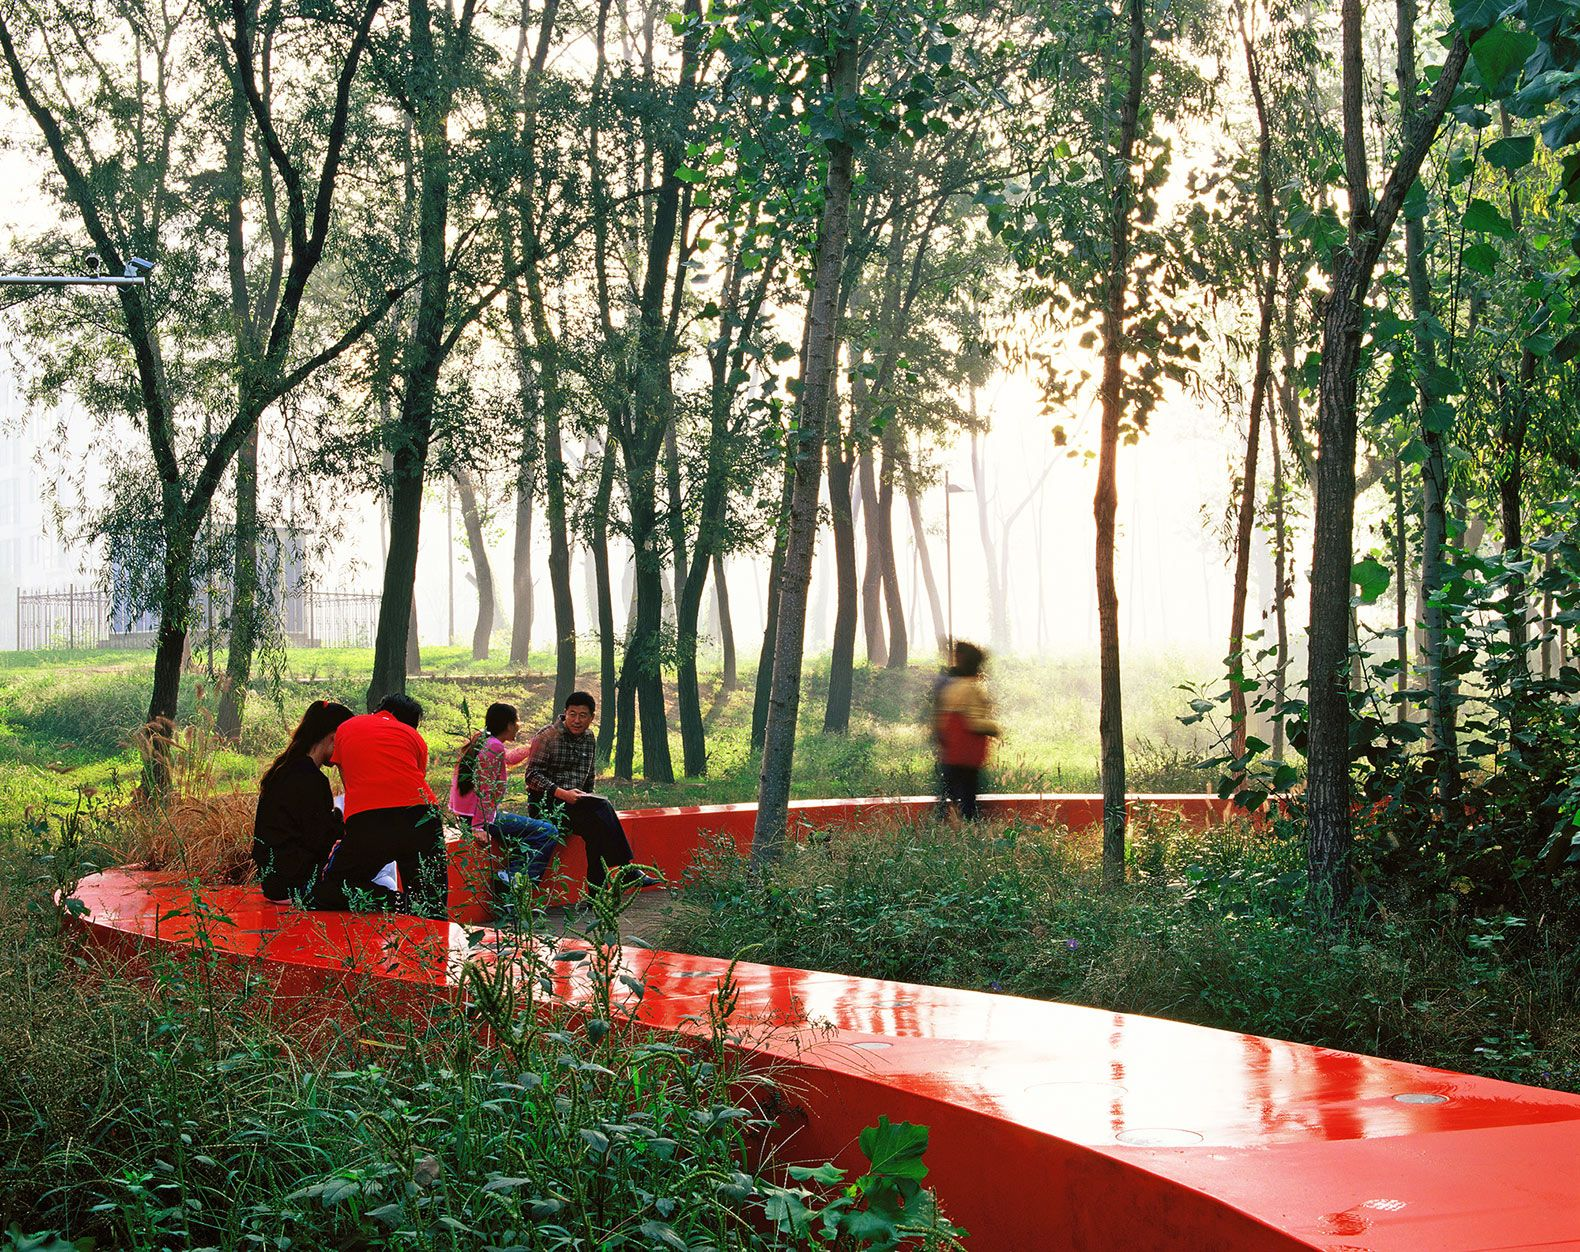 10 Landscape Design Projects That Turned Neglected Spaces Into Incredible Parks Urban Park Landscape Design Landscape Architecture